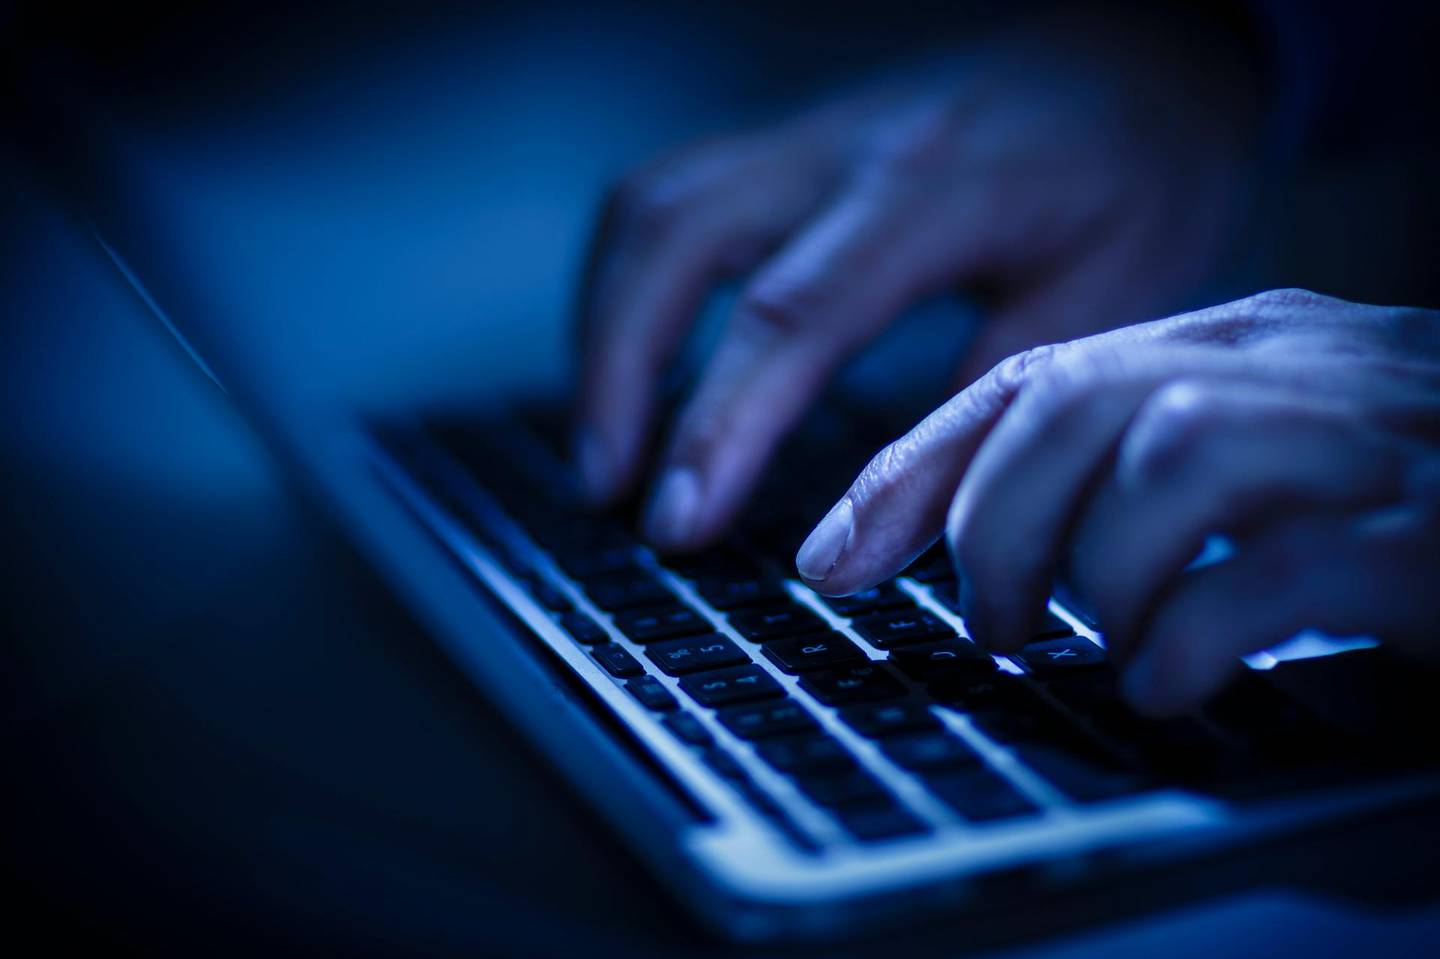 BERLIN, GERMANY - JUNE 22: In this photo Illustration hands typing on a computer keyboard on June 22, 2016 in Berlin, Germany. (Photo Illustration by Thomas Trutschel/Photothek via Getty Images) *** Local Caption ***  op27se-online-troll.jpg